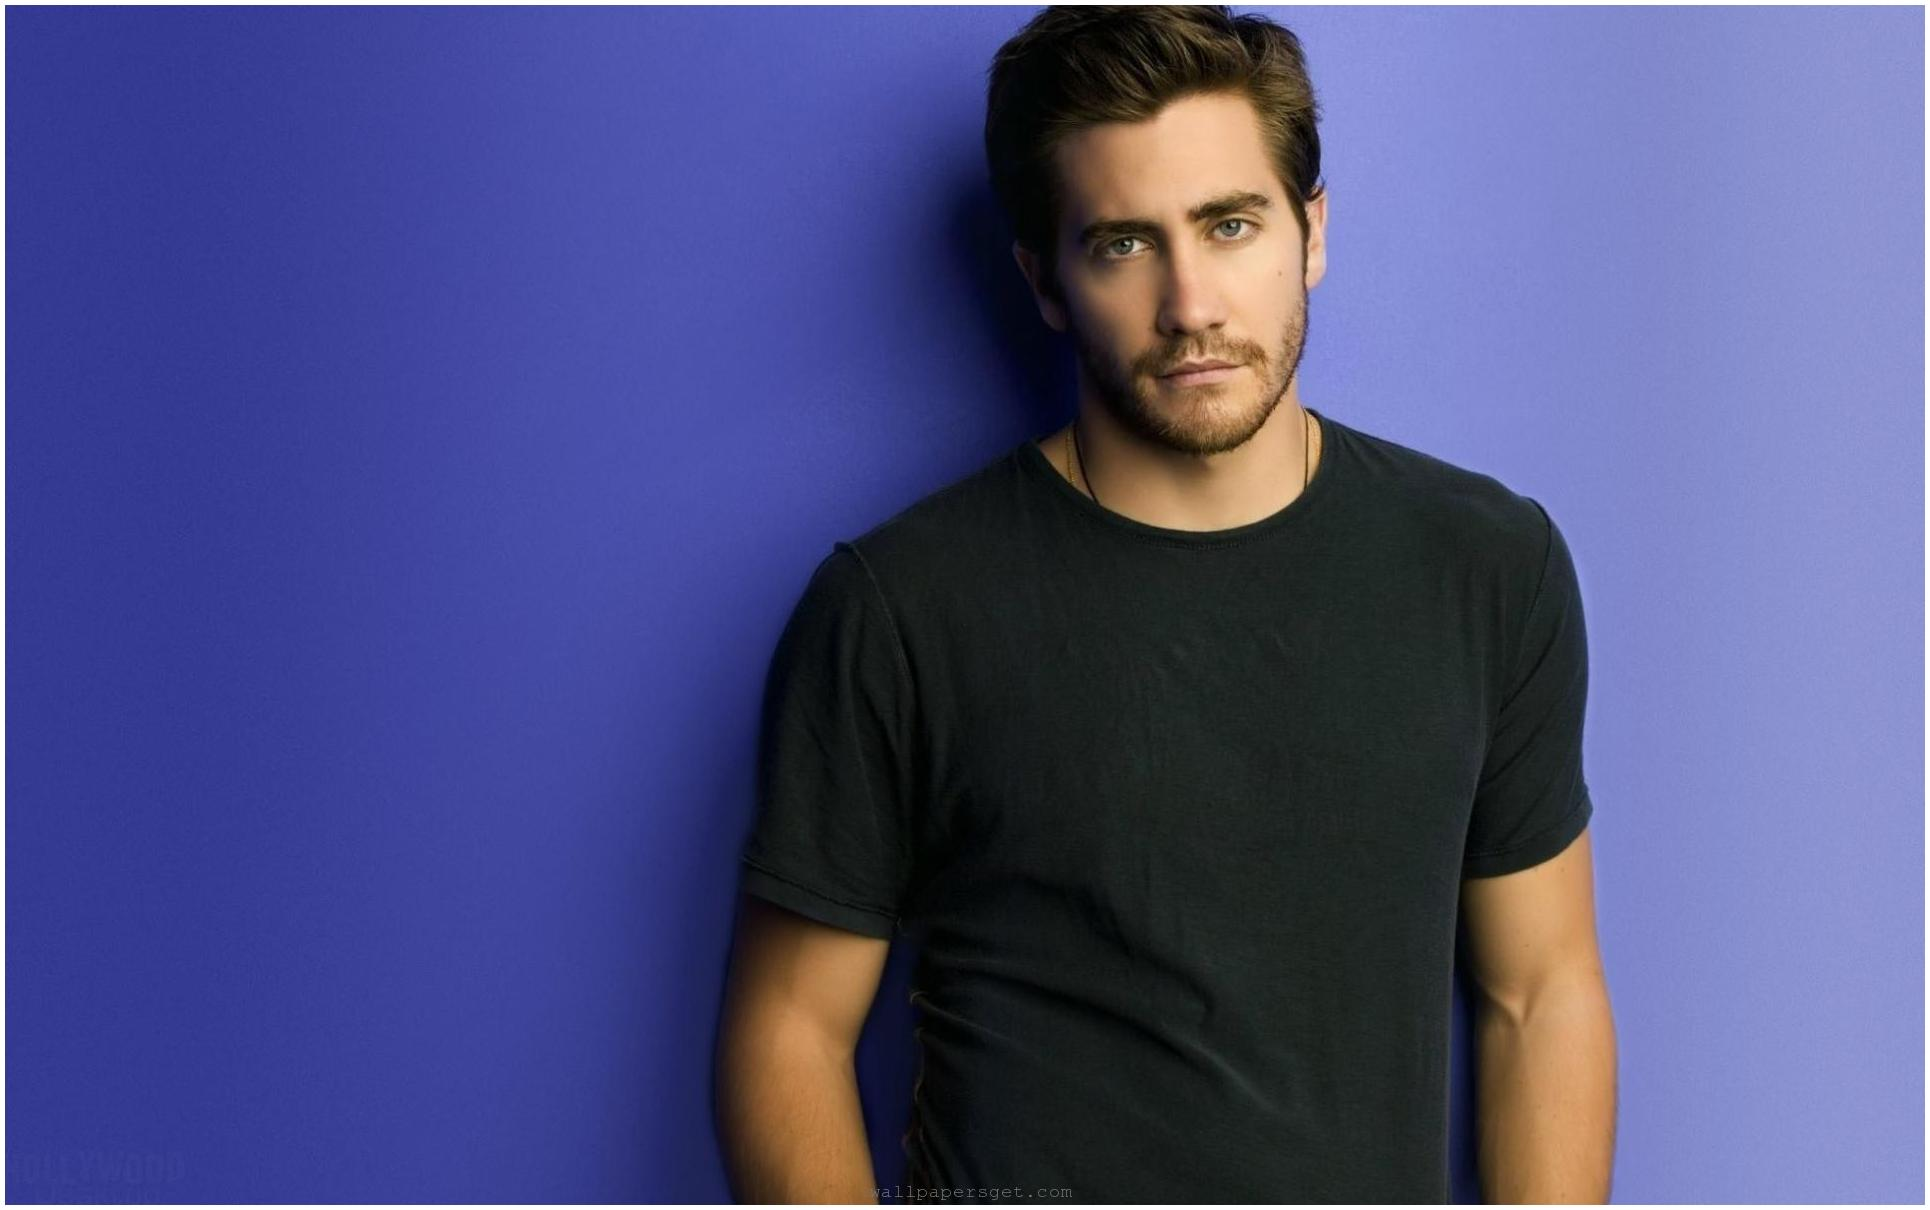 Handsome Man of the Day Handsome Hollywood Actor HD Wallpapers 1930x1210